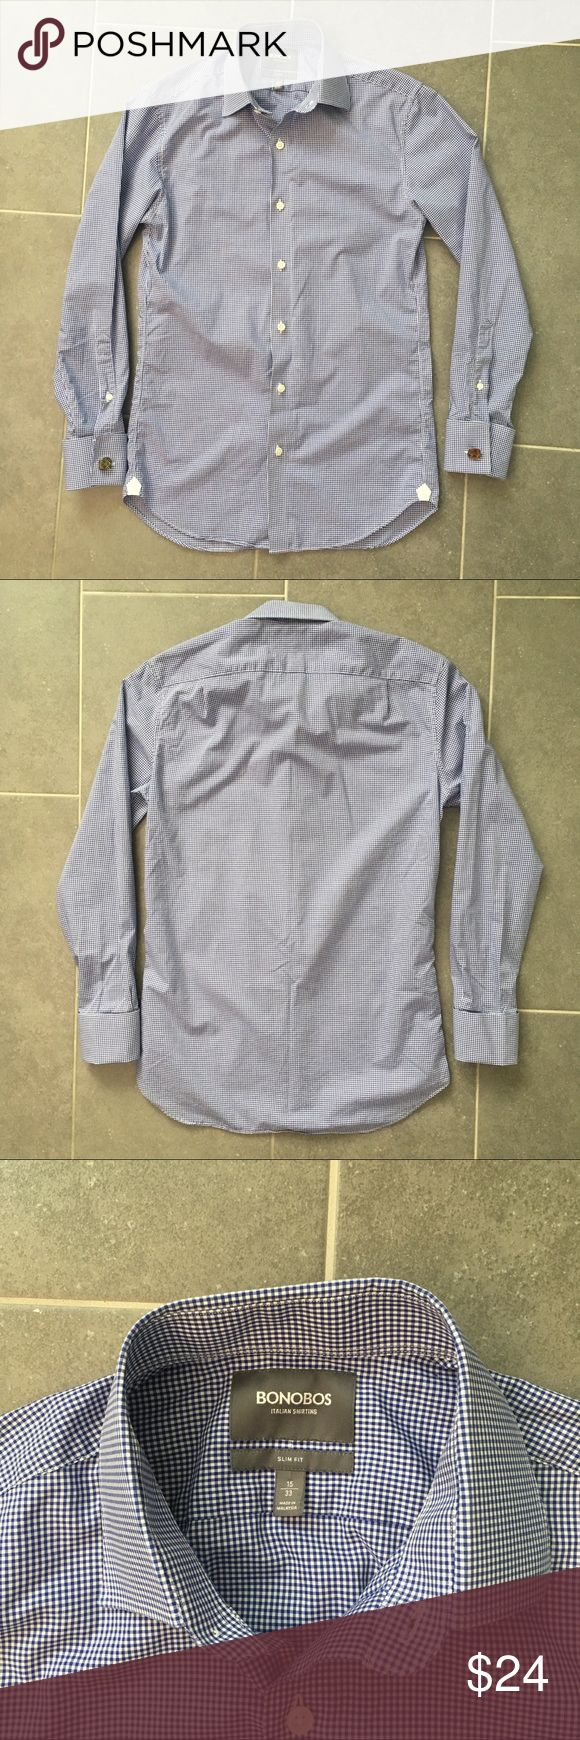 LikeNew Bonobos Dress Shirt High Quality!!! Like new! Excellent condition dress shirt by Bonobos. Slim fit. 15 Neck size with cuff-link wrists - pictured cufflinks not included!   This high quality Italian designed shirt is awesome! Which is how you'll look and feel slipping into this shirt. Don't let someone else buy it out from under you! Priced to sell! Bonobos Shirts Dress Shirts